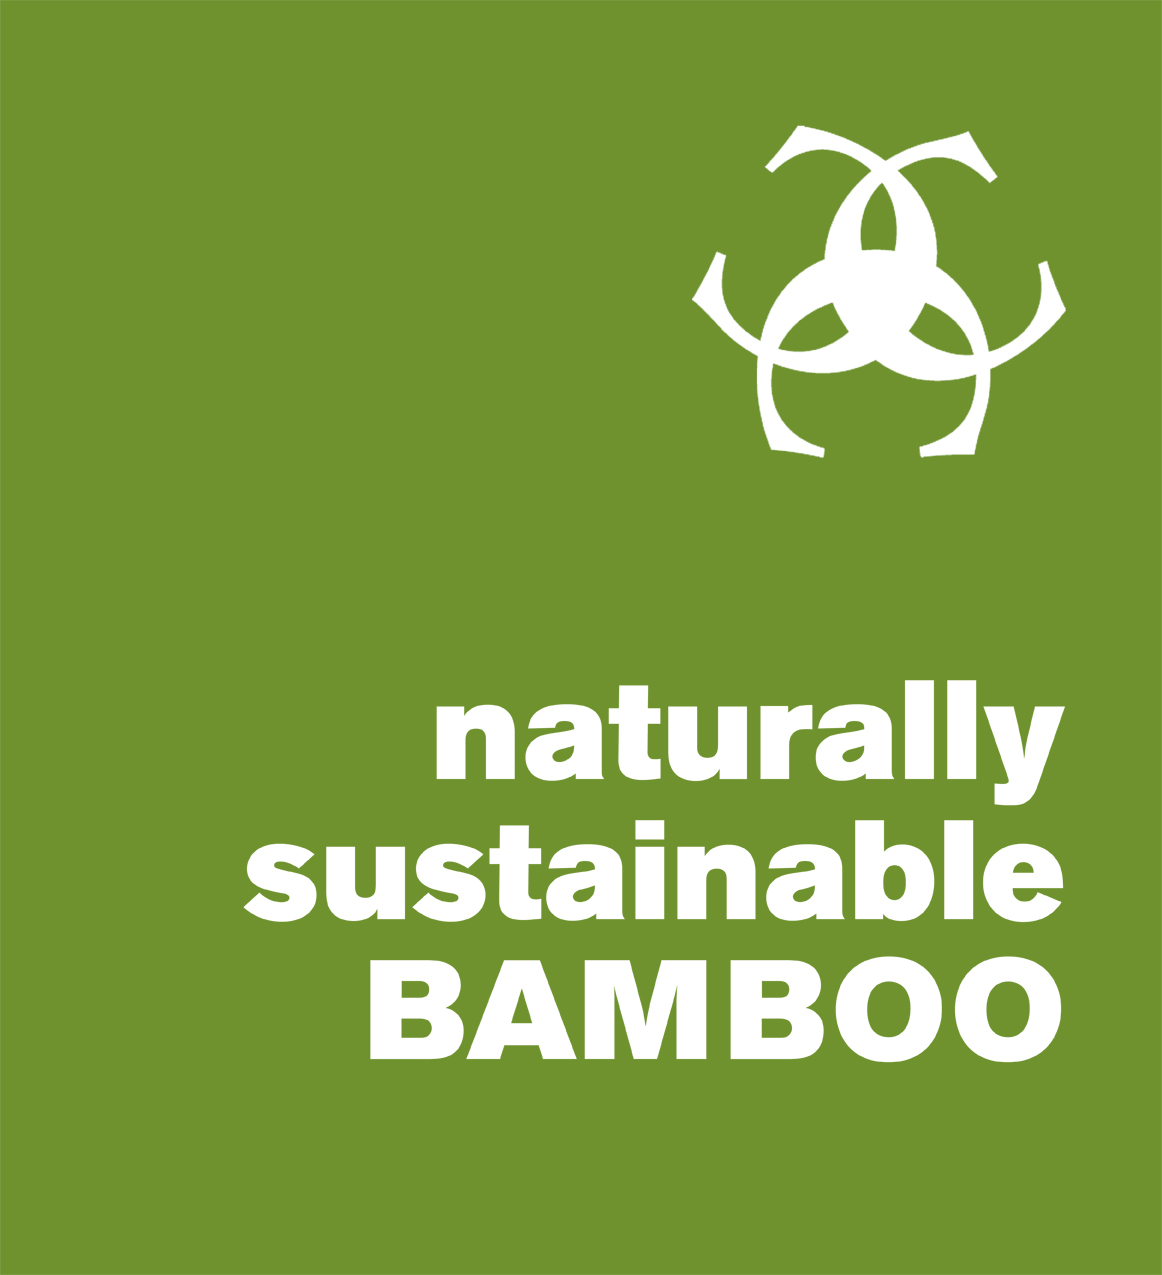 Bamboo Clothing Companies House: RUNIN Green: Bamboo